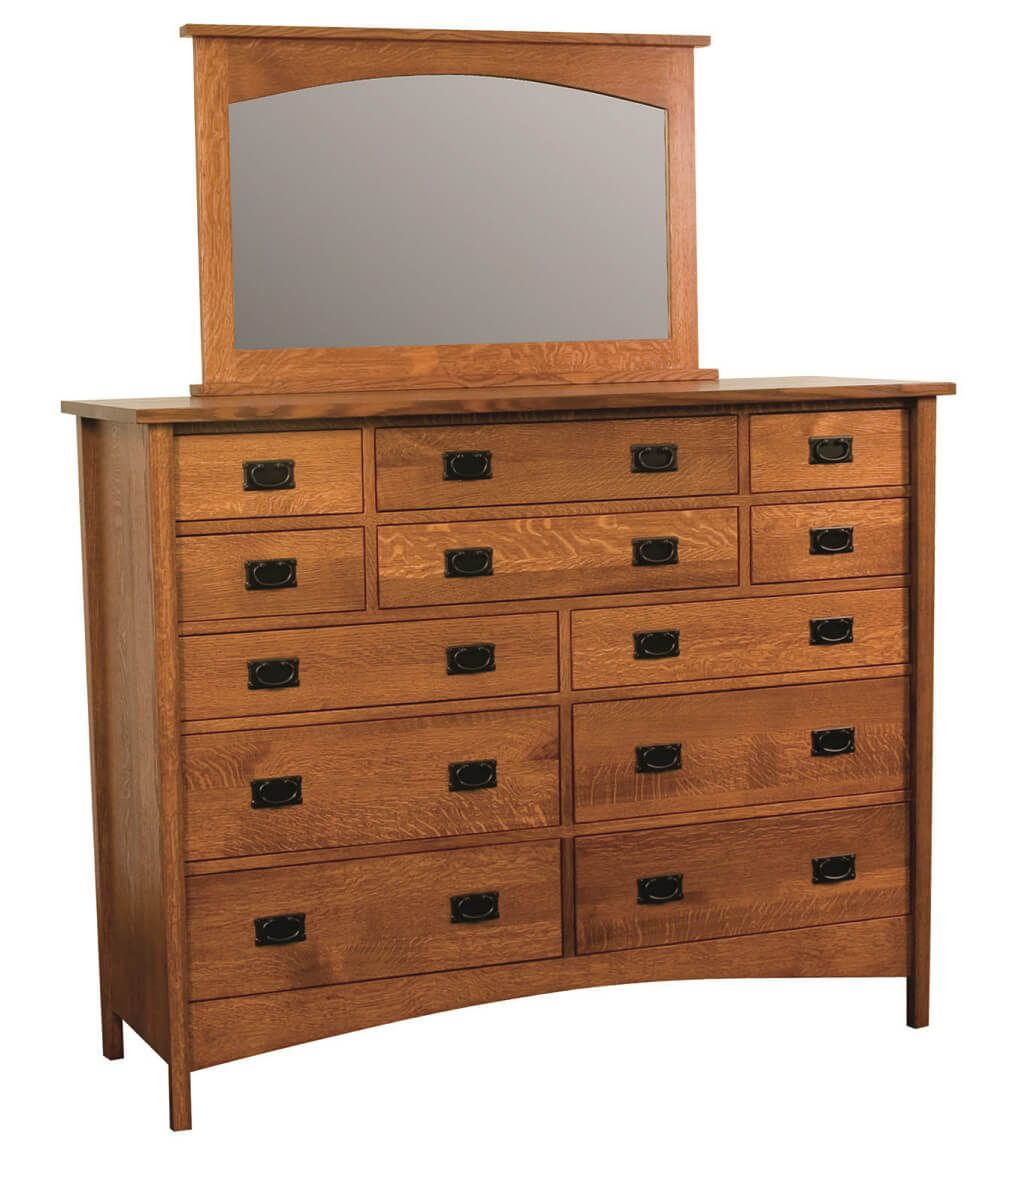 Acme 12-Drawer Dresser